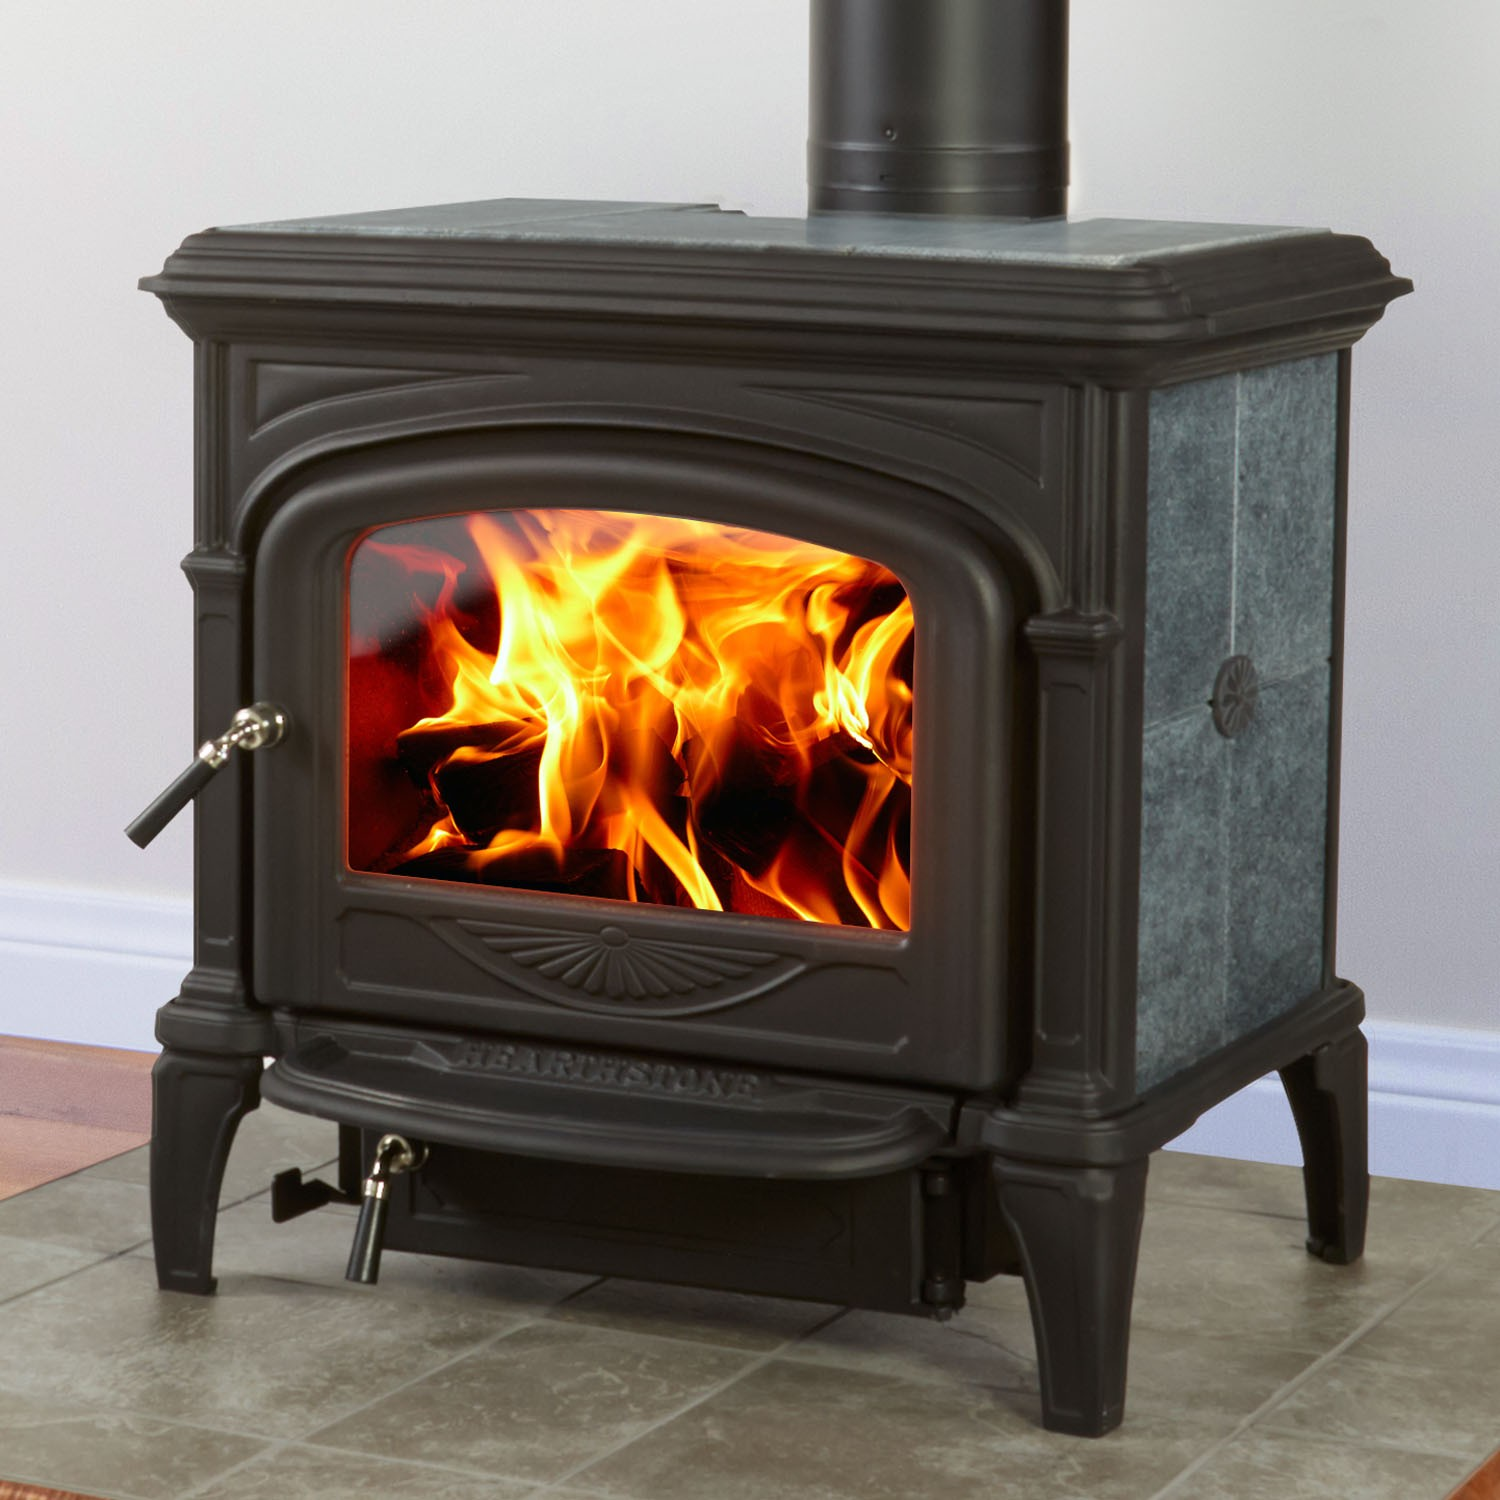 Cozy Cabin Stove & Fireplace Shop Freestanding Wood Stoves Page 2